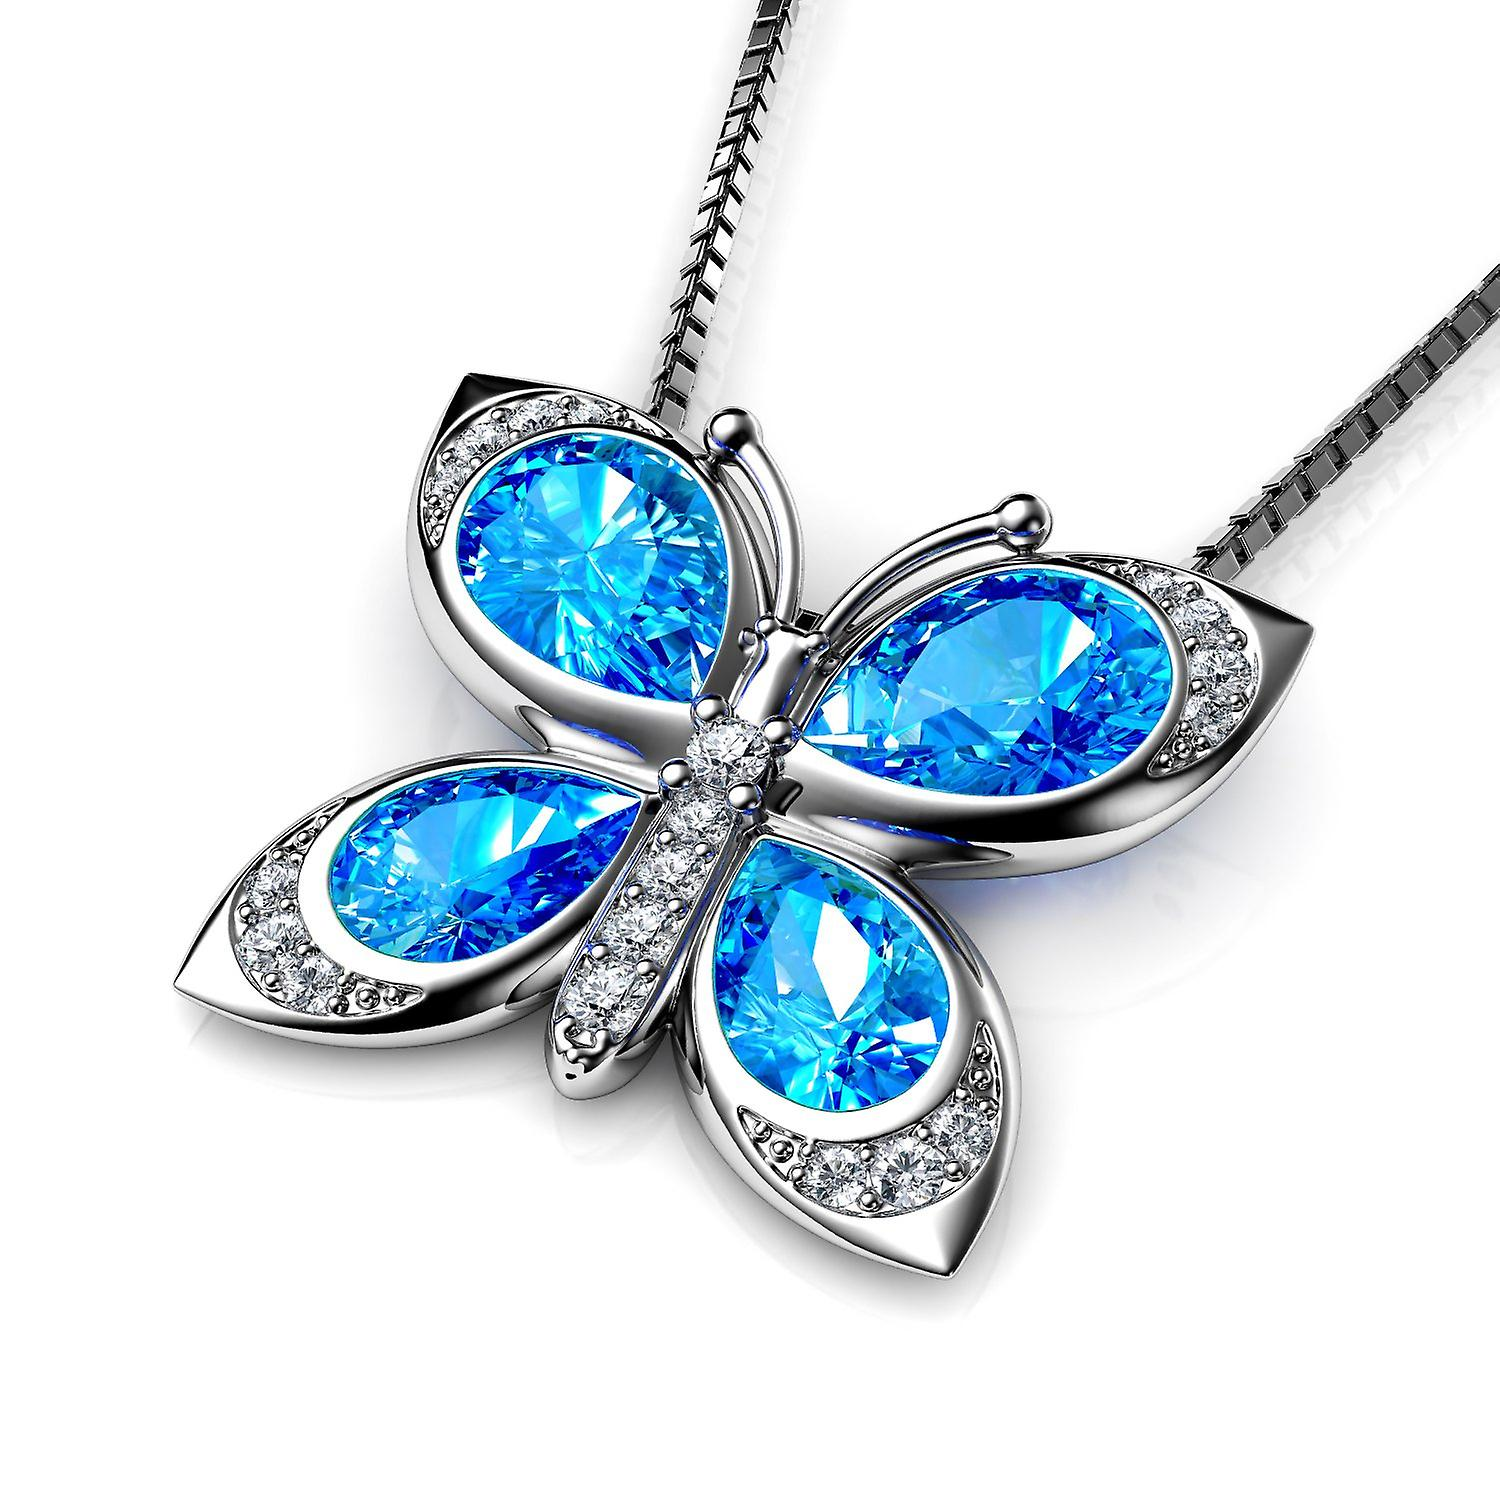 Dephini butterfly necklace - 925 sterling silver cz crystals